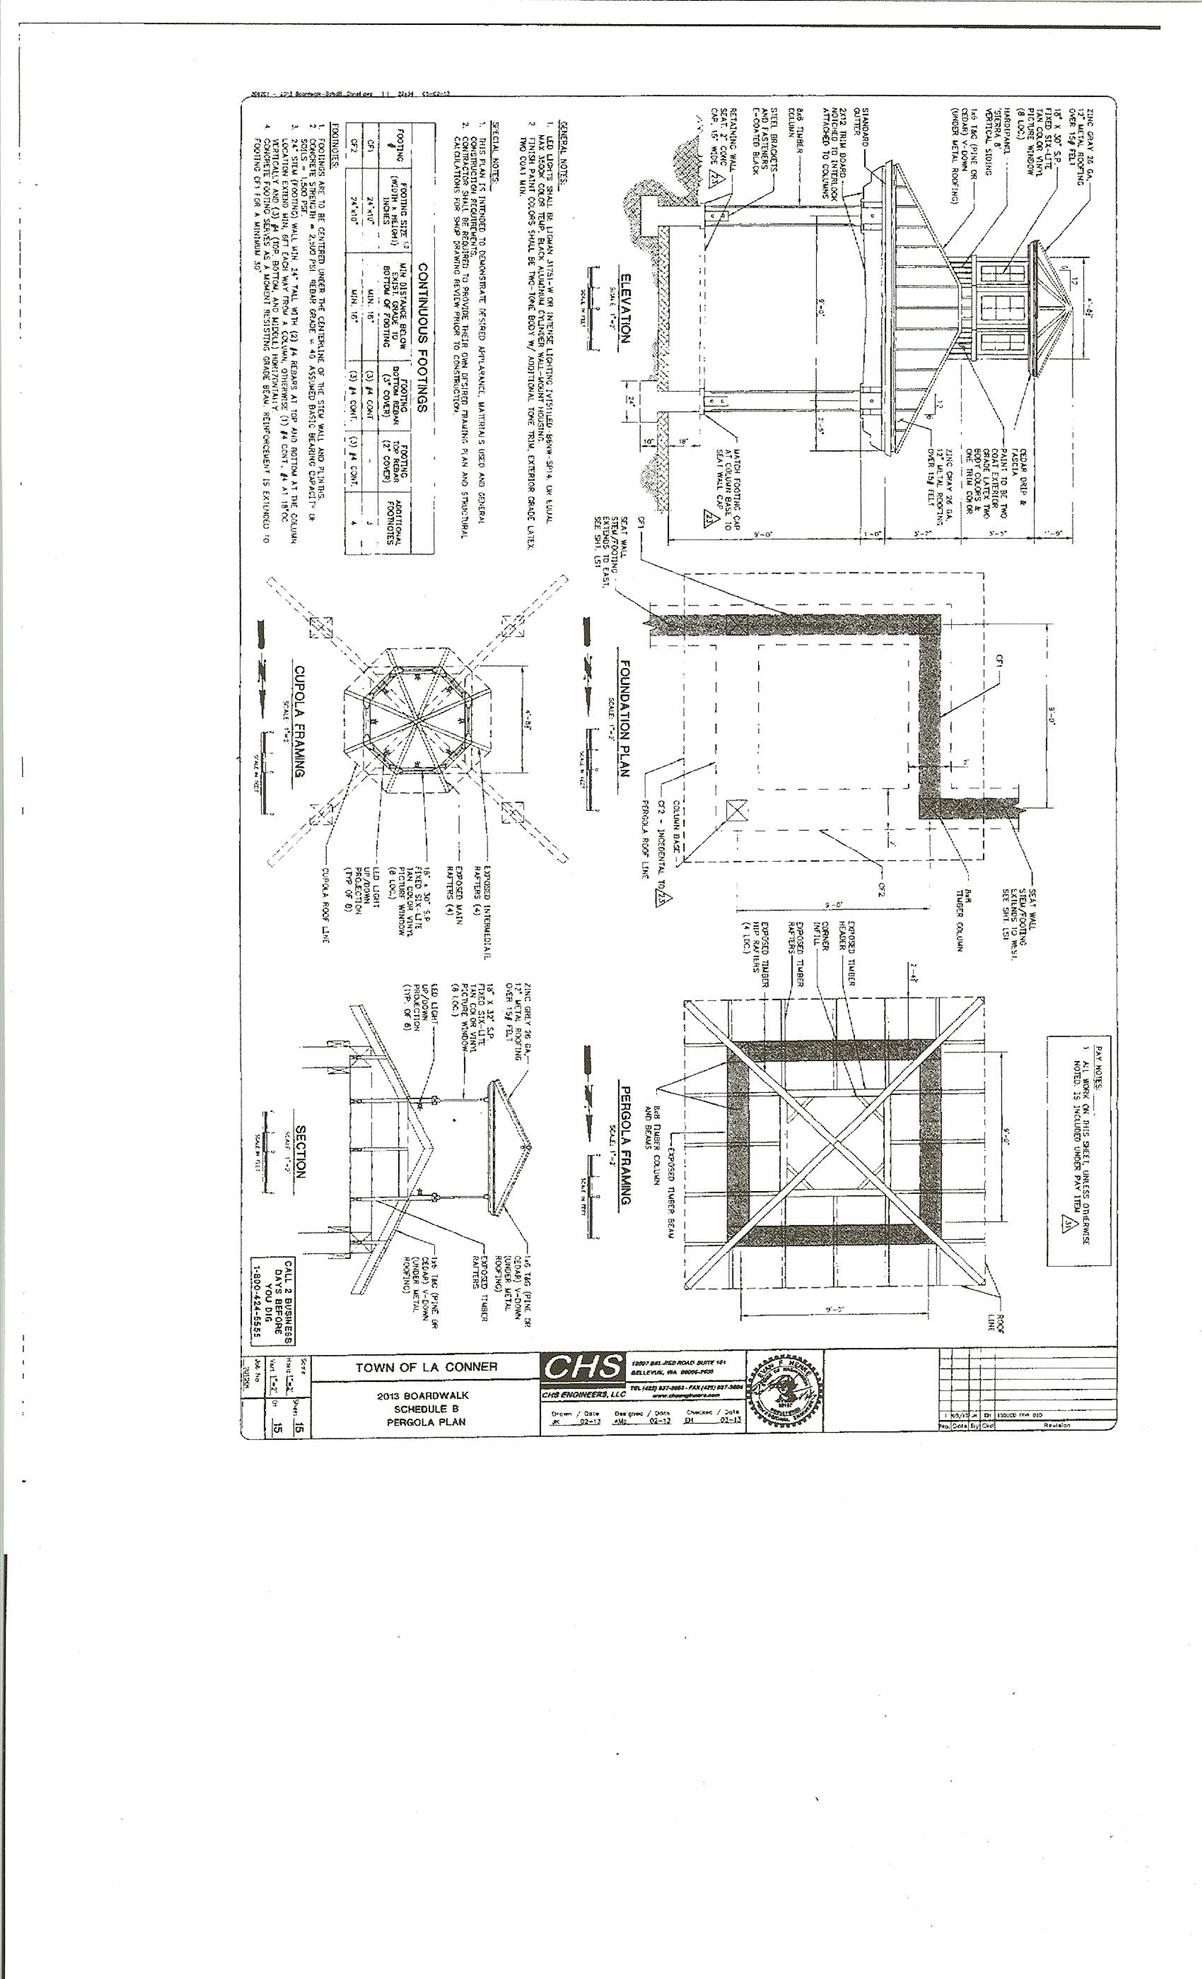 Town Of La Conner Project Rotary Club Laconner Cupola Schematic Here Is A Picture The Pergola That We Are Considering Purchasing For New Park In It Will Be At End Washington Street